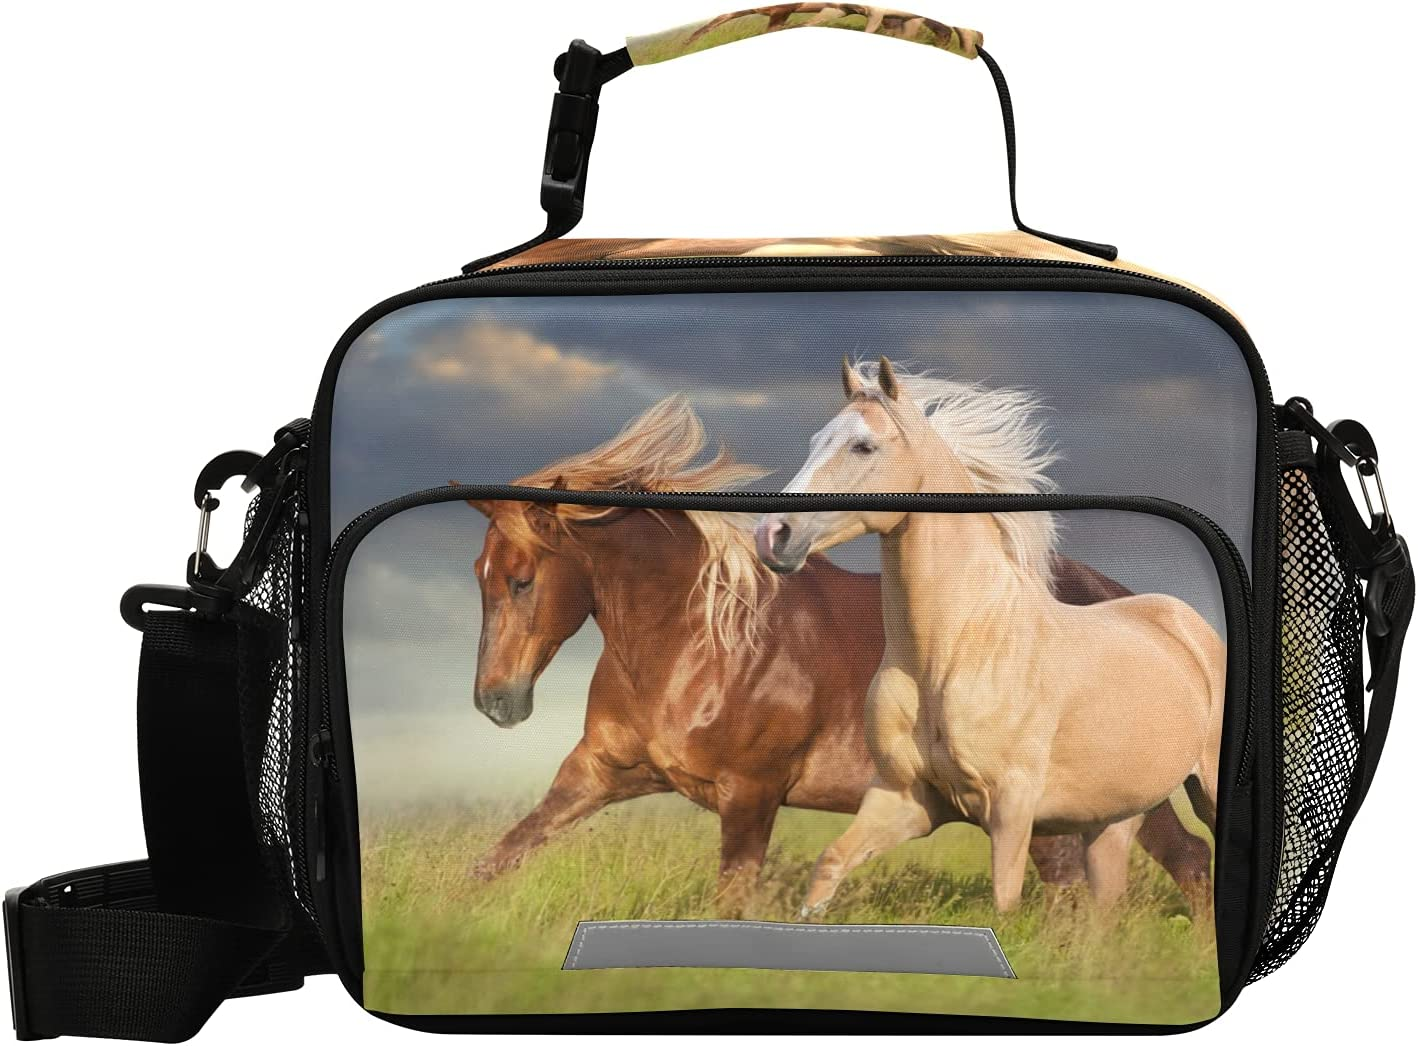 Lunch Bags Boxes Insulated Small Girls Cooler Kids Boys Thermal Red And Palomino Horse for School Student with Shoulder Strap Water-Resistant